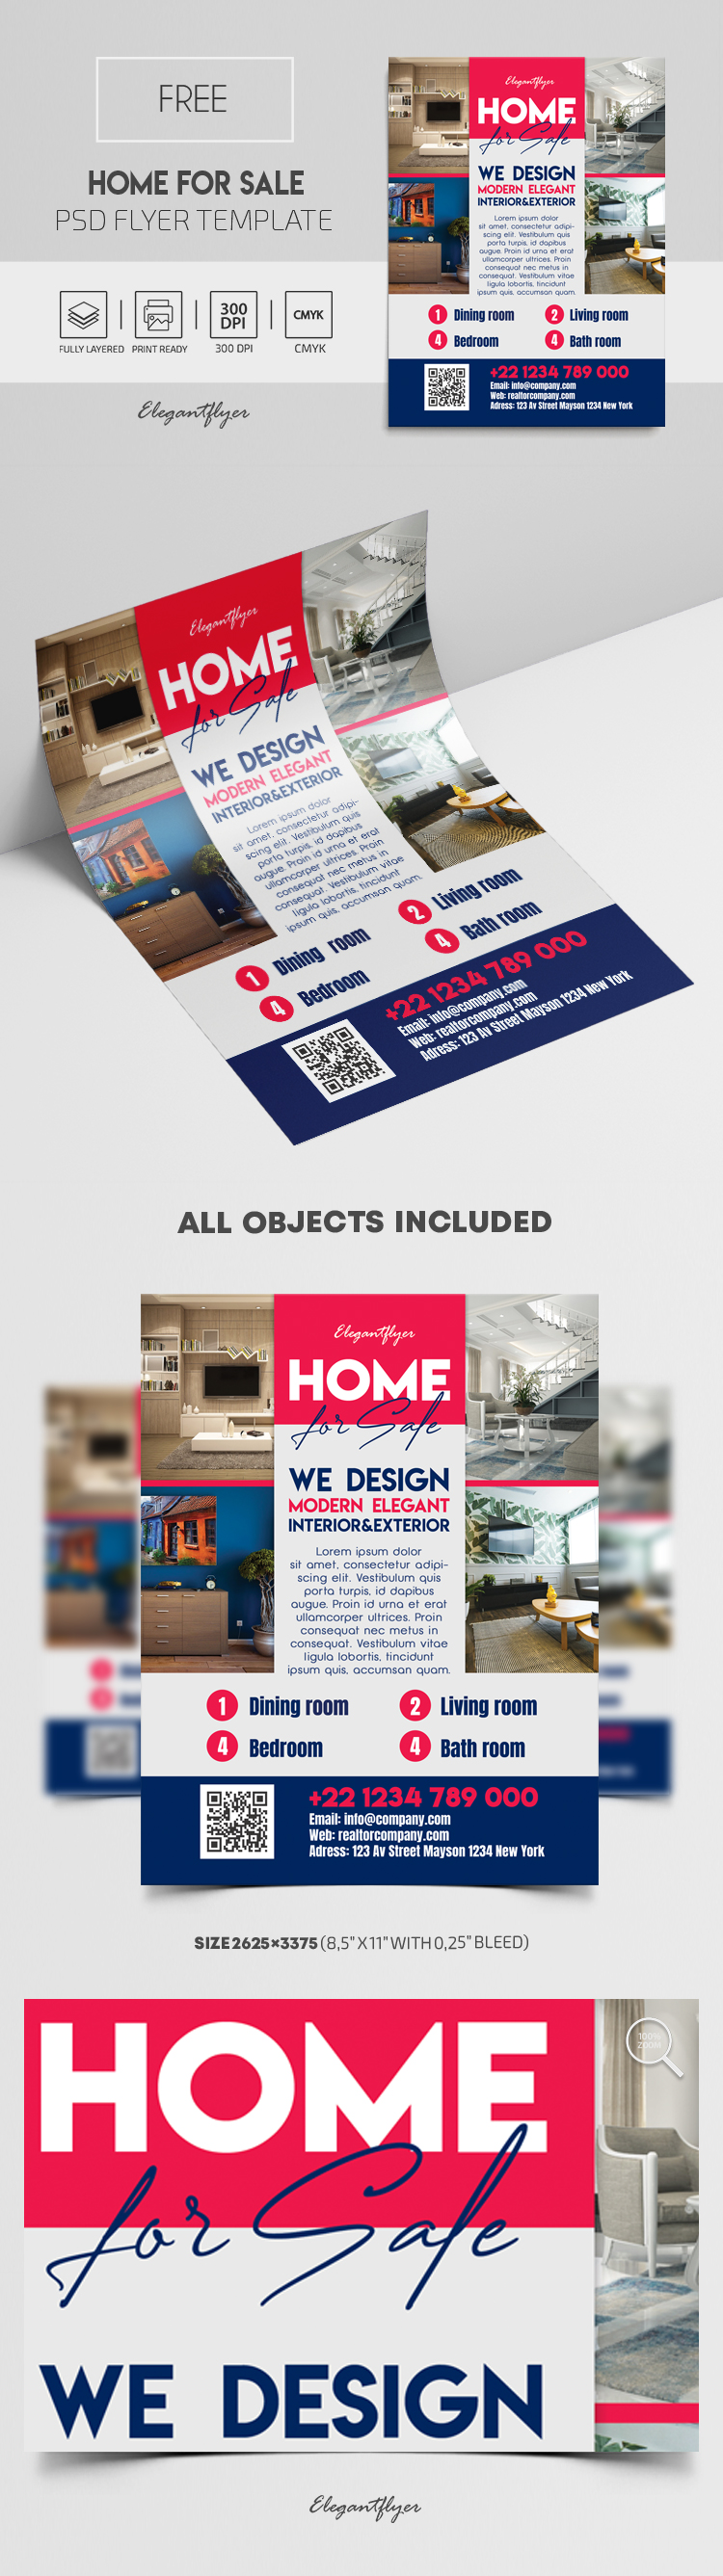 Home For Sale – Free PSD Flyer Template